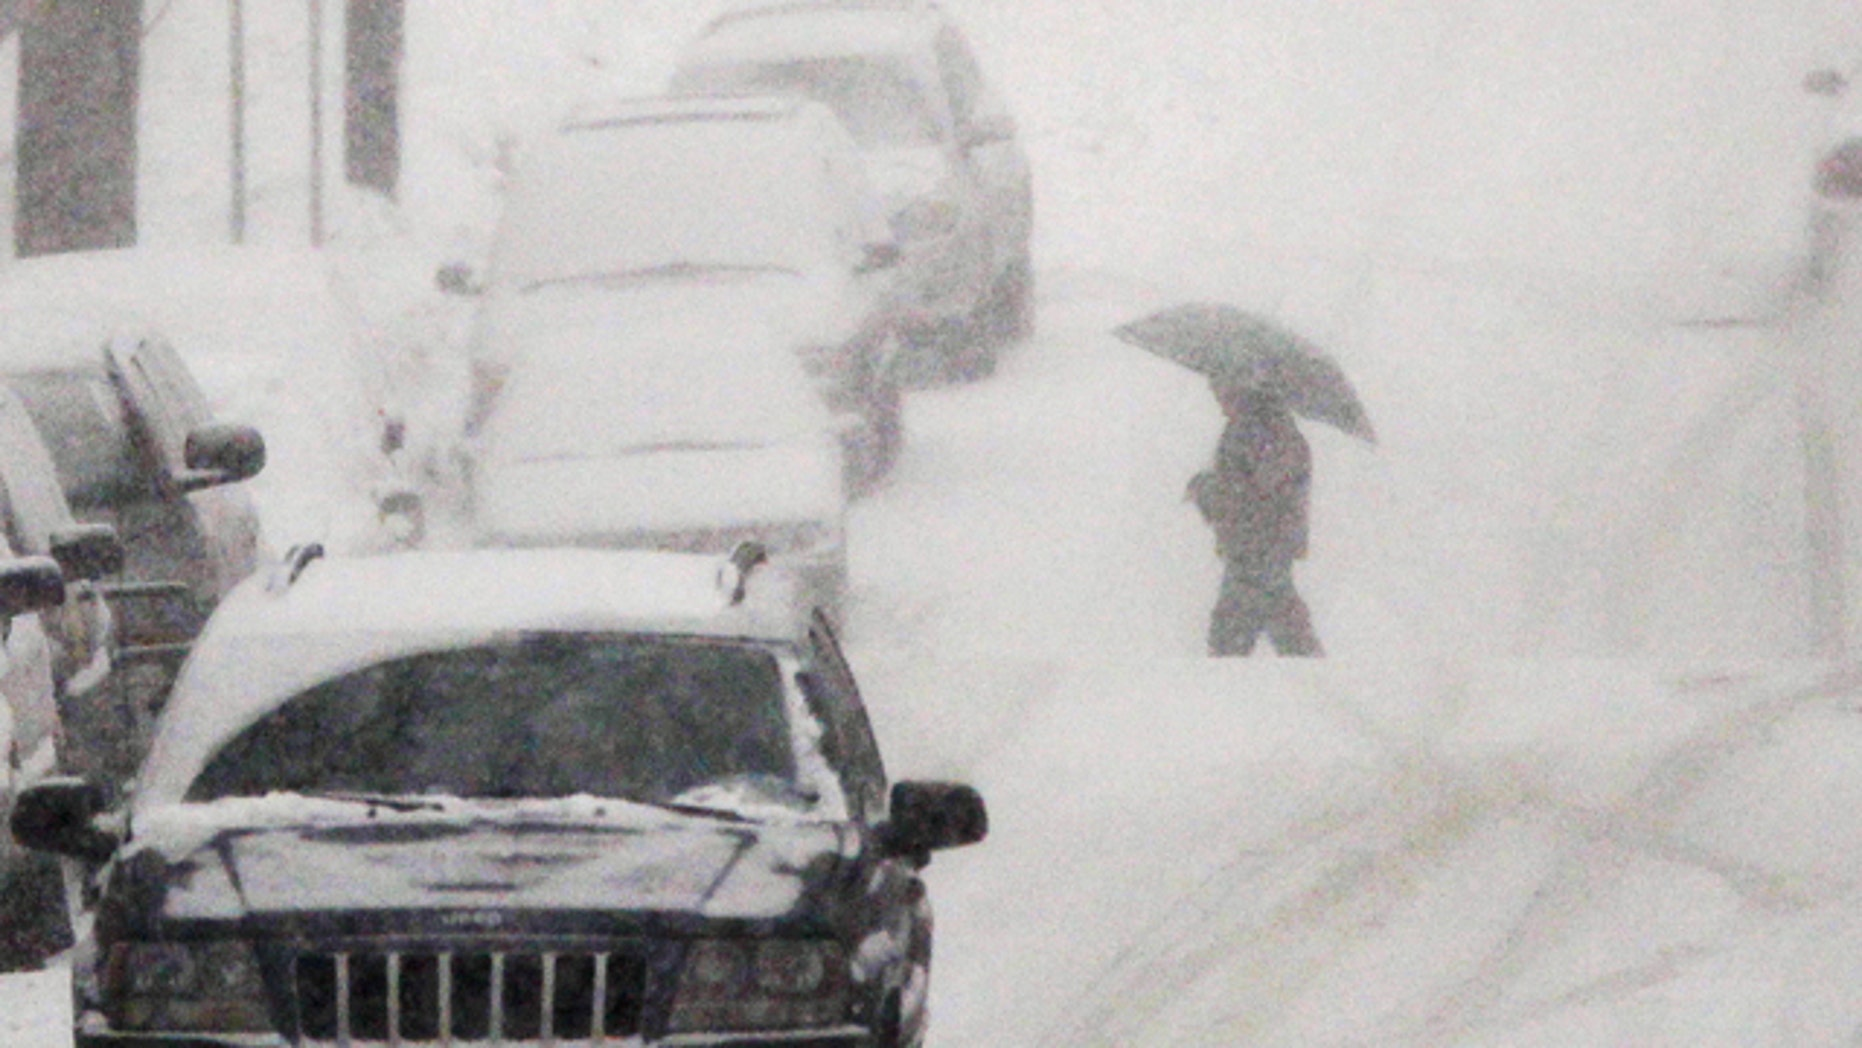 Jan. 26: A person with an umbrella crosses the street as snow falls in Belleville, N.J.